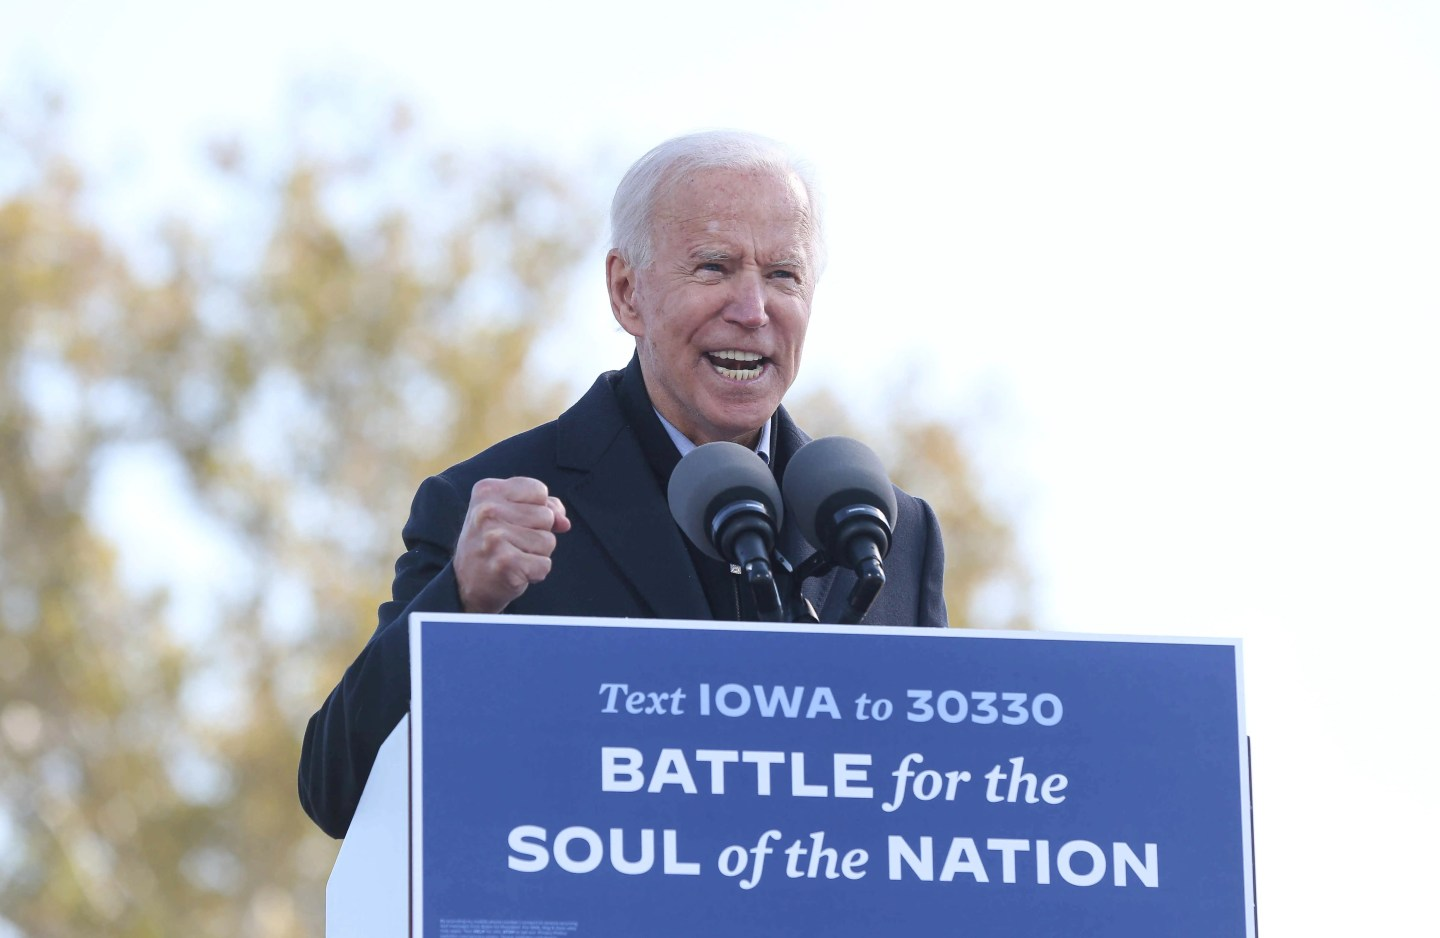 Democratic presidential candidate Joe Biden speaks to supporters at the Iowa State Fairgrounds in Des Moines on Friday, Oct. 30, 2020.